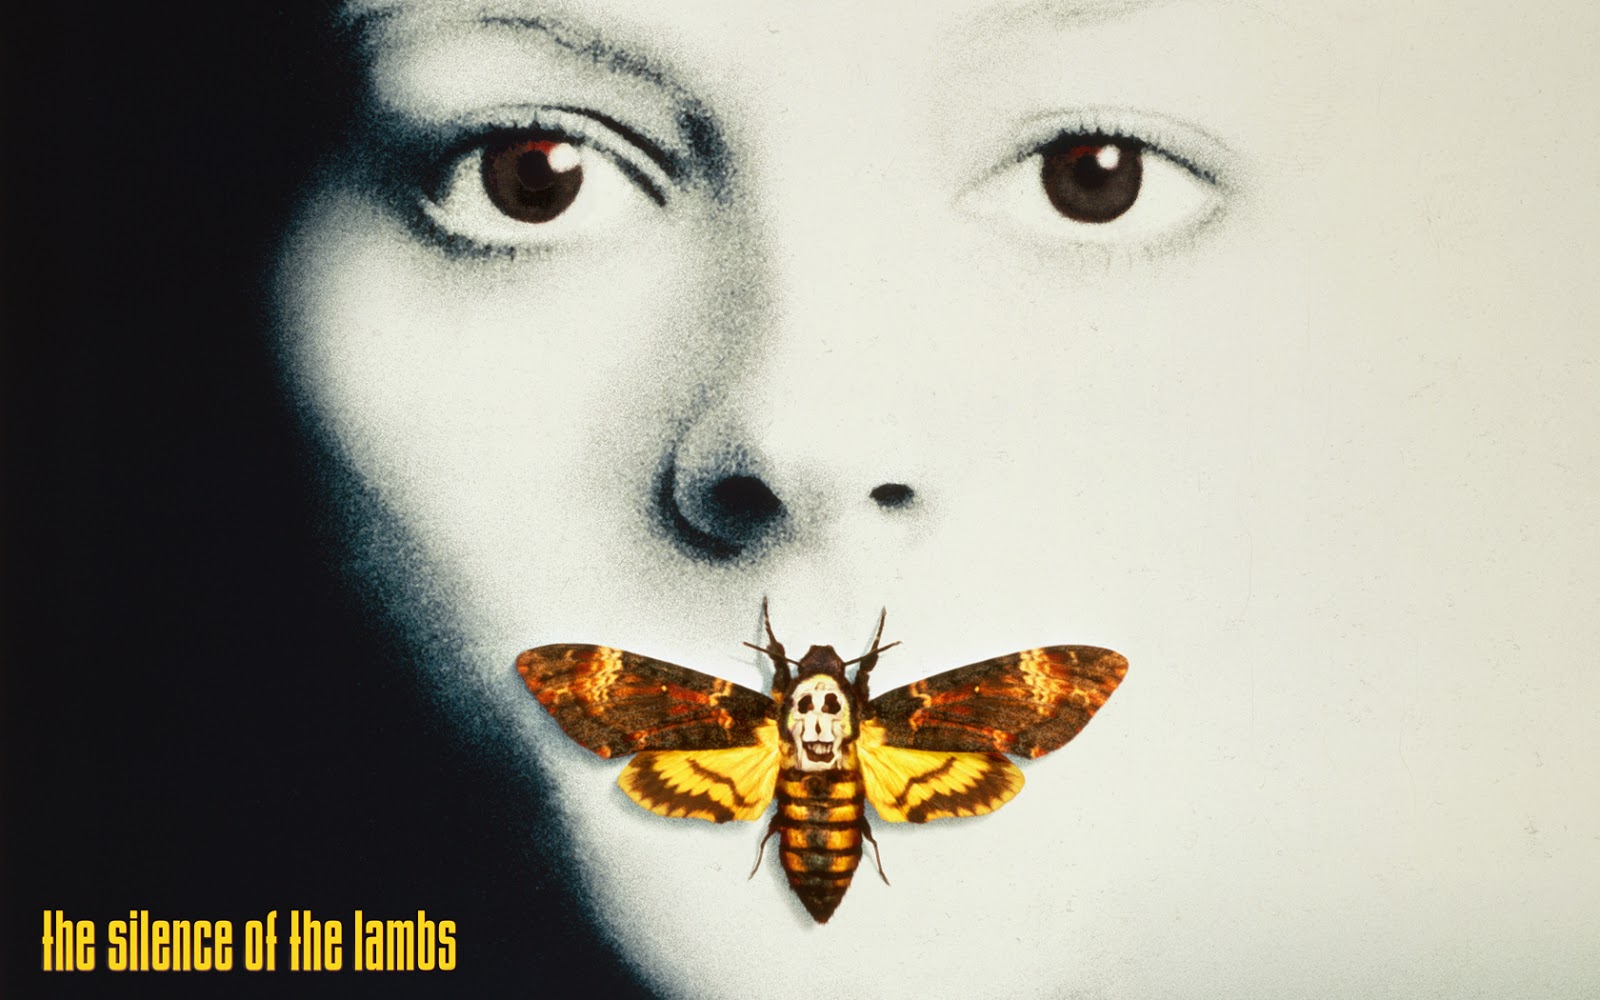 scary-movies-based-on-actual-incidences-silence-of-the-lambs